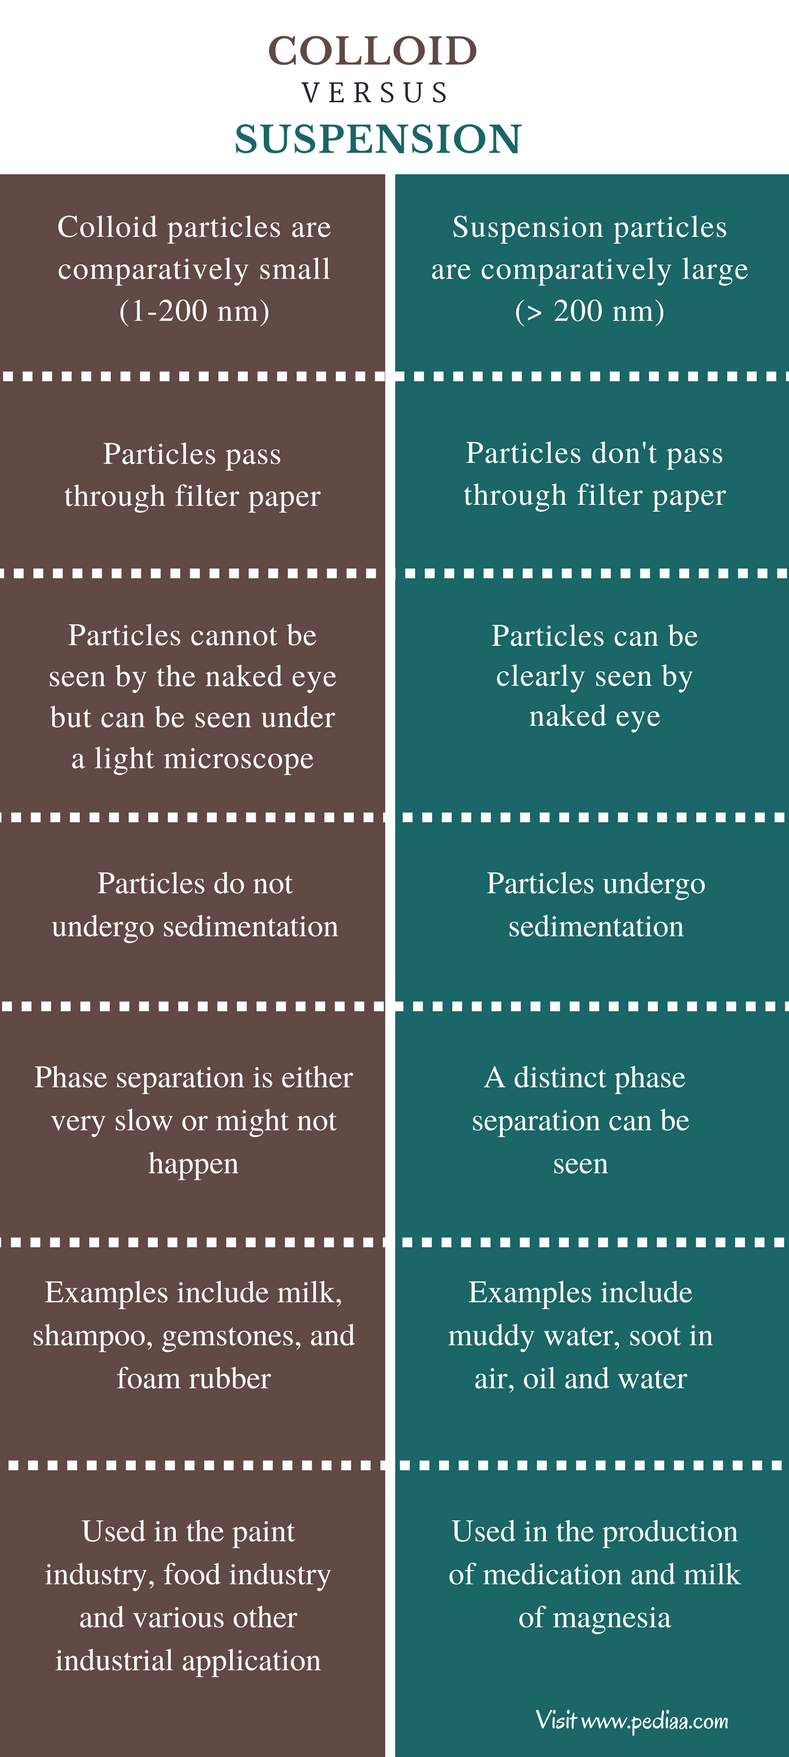 Difference Between Colloid and Suspension - Definition ...